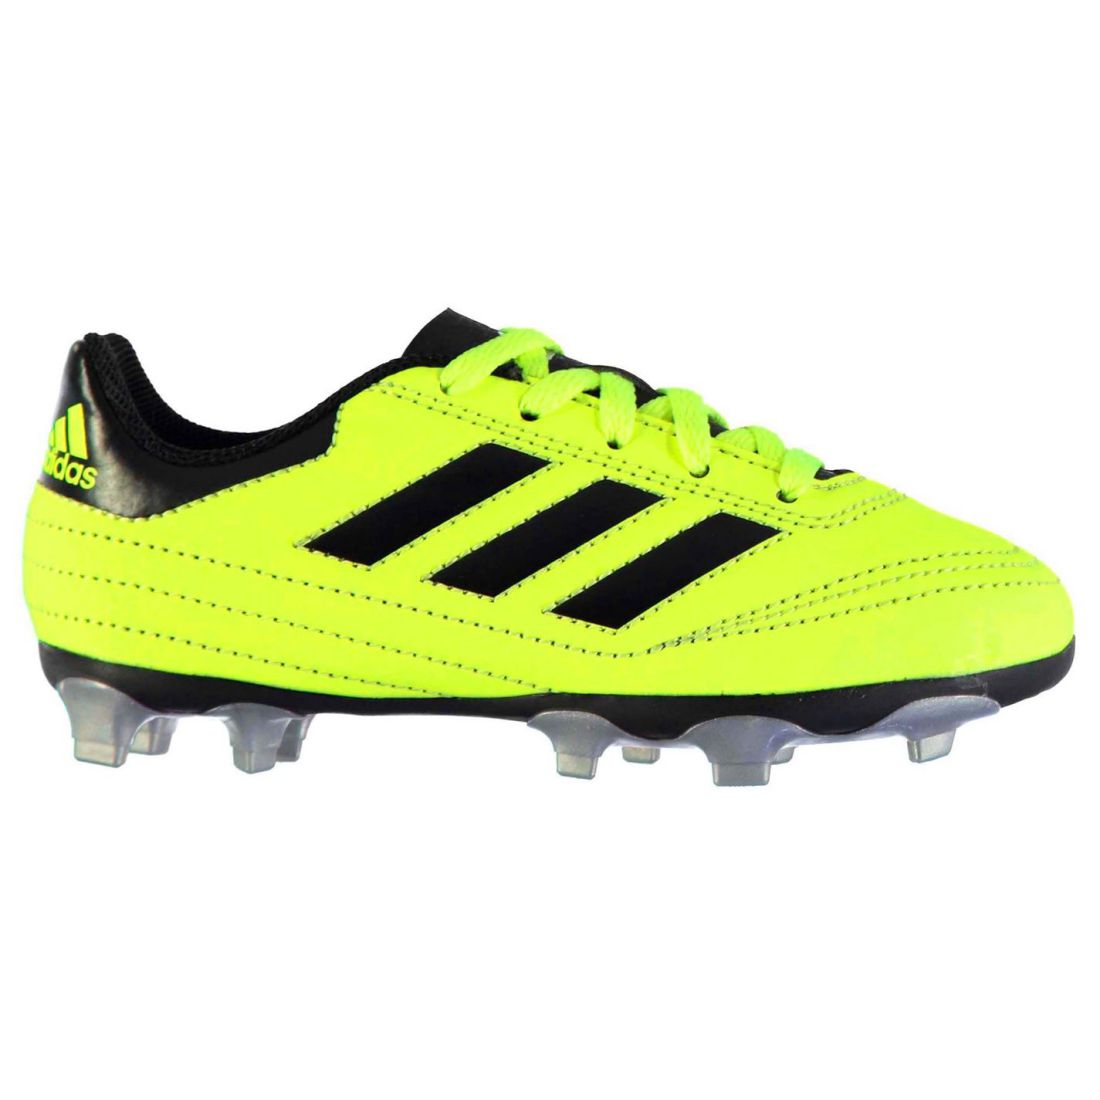 cheap for discount 25710 abd8b adidas-Kids-Goletto-Childrens-FG-Football-Boots-Lace-